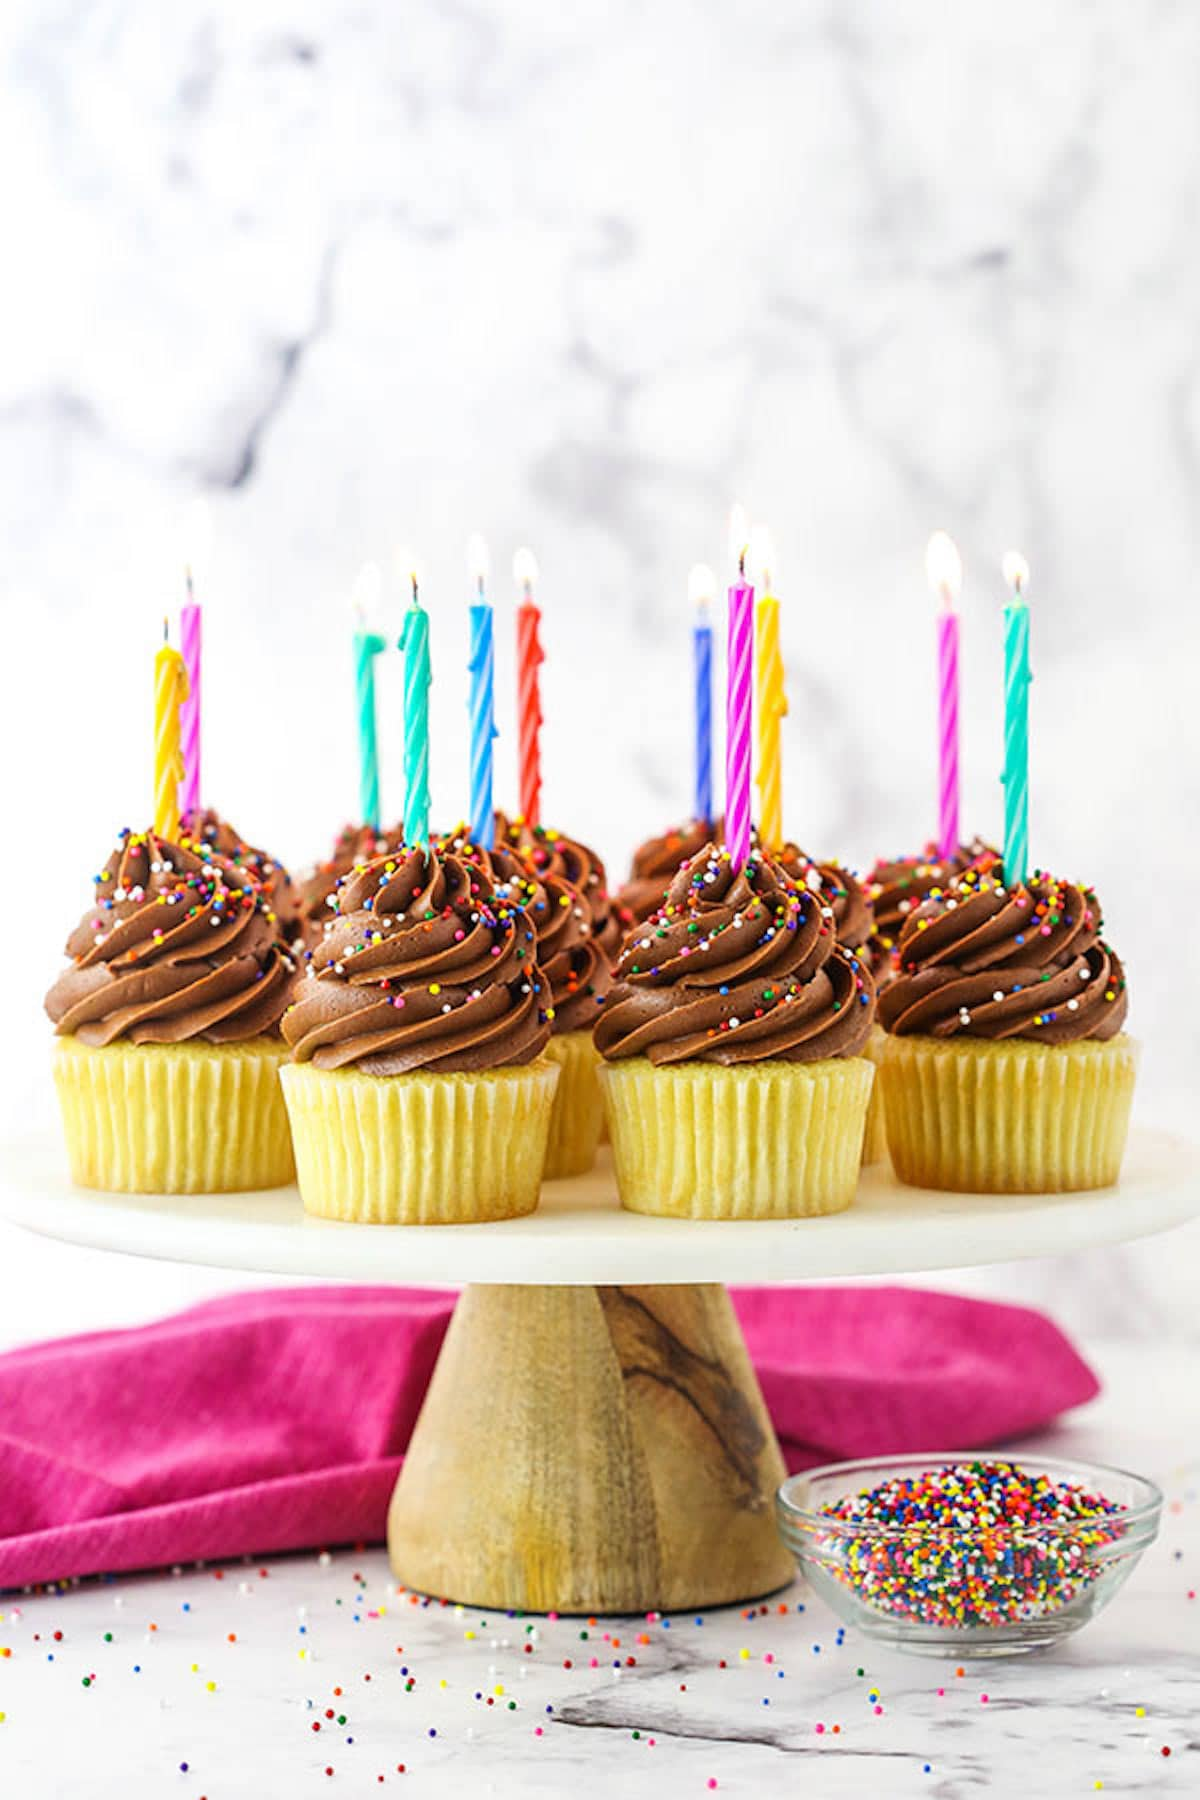 Chocolate Frosted Yellow Cupcakes with Colorful Candles On Them on a white tray